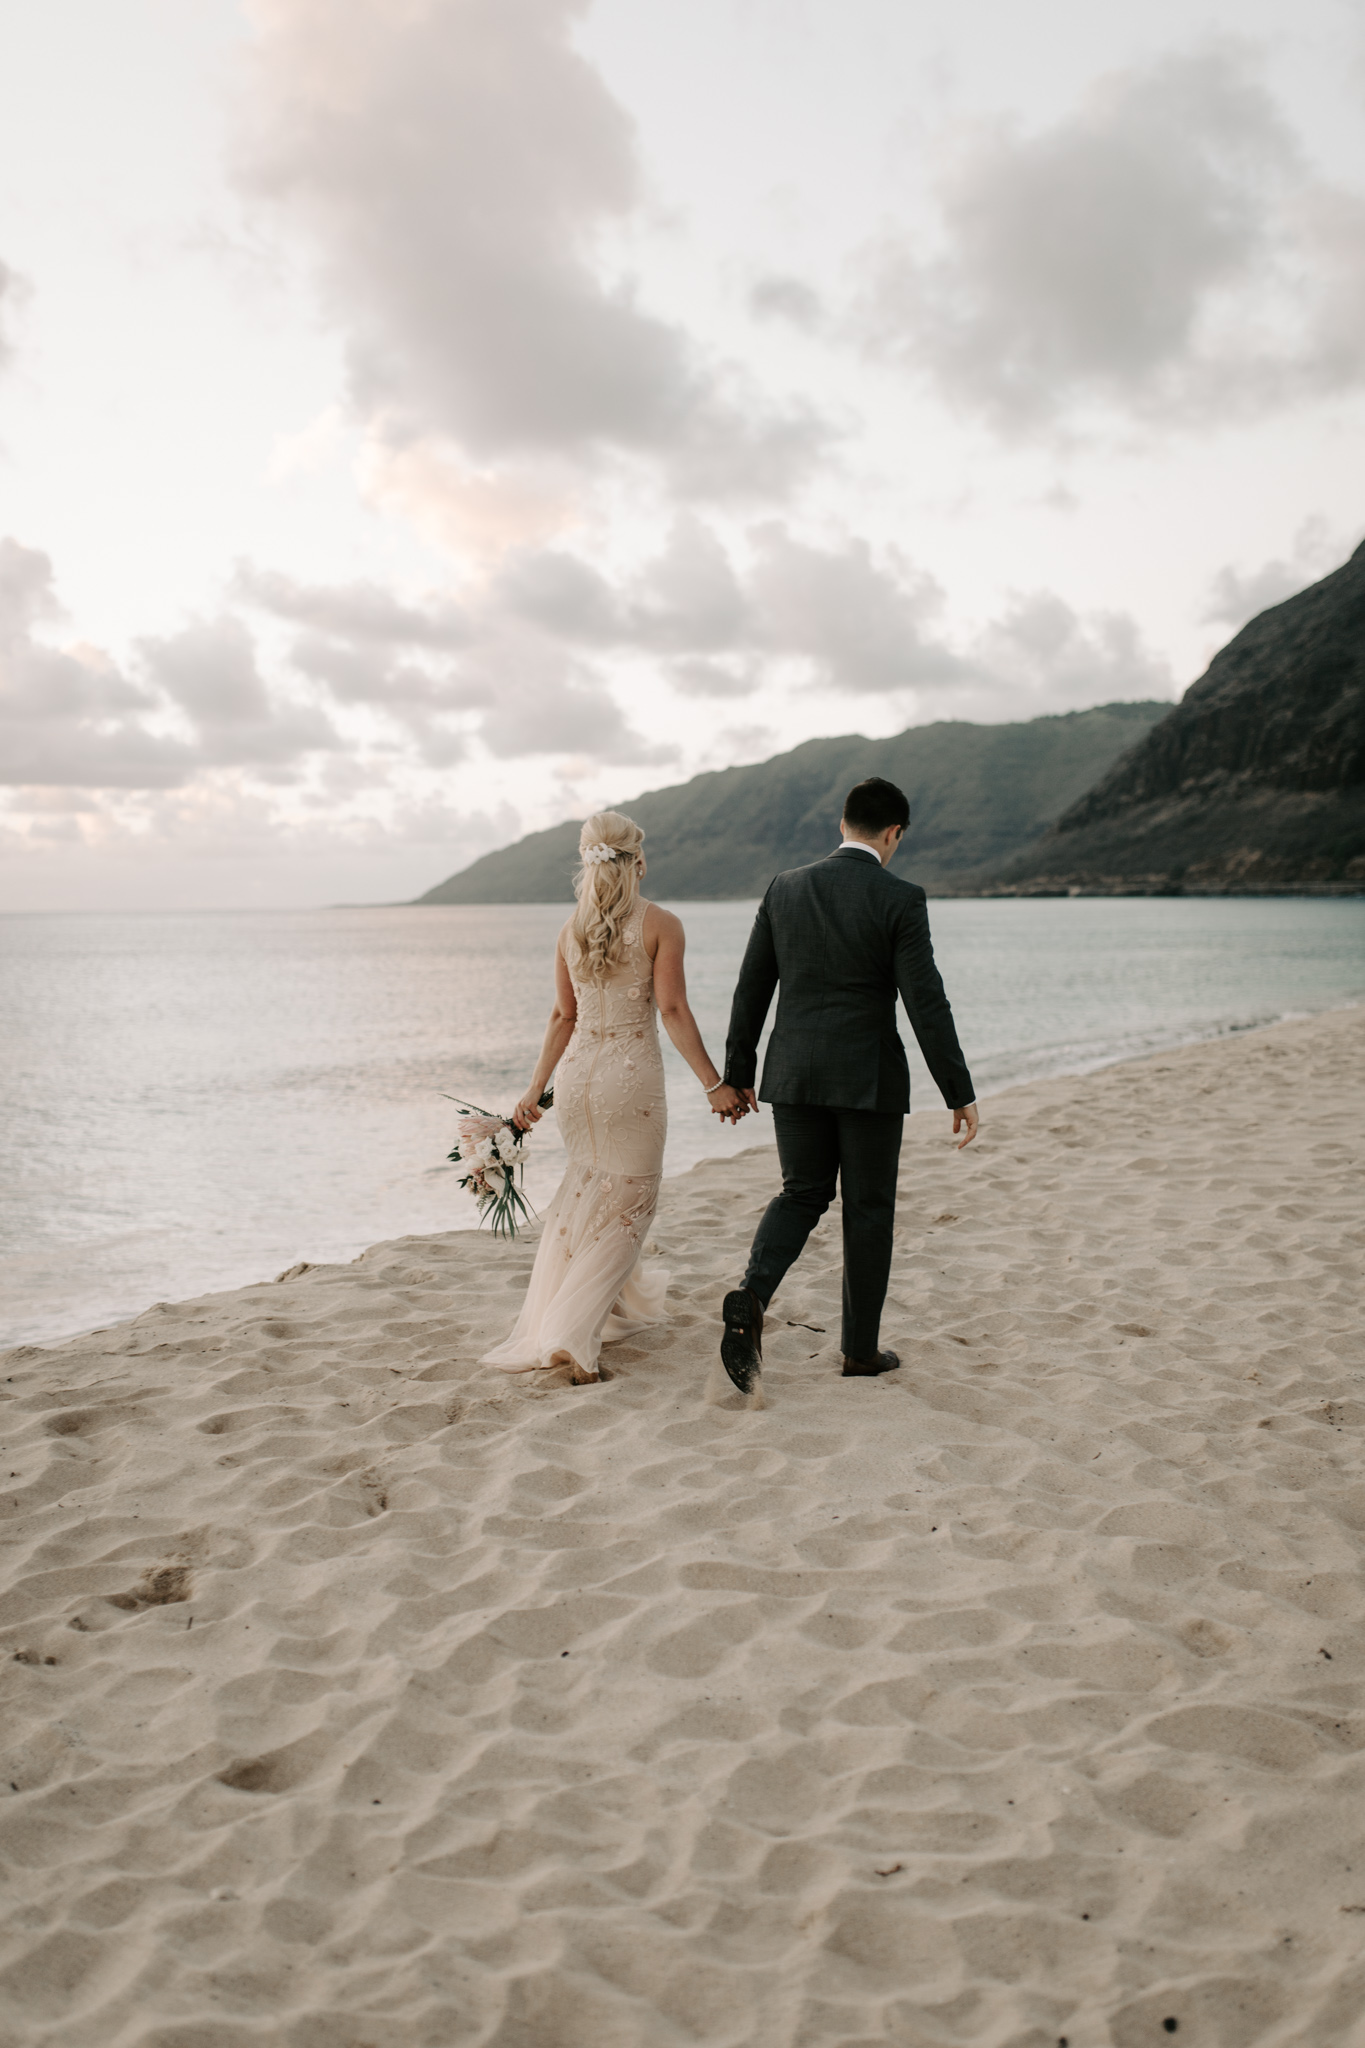 Hawaii Beach Wedding by Desiree Leilani Photography